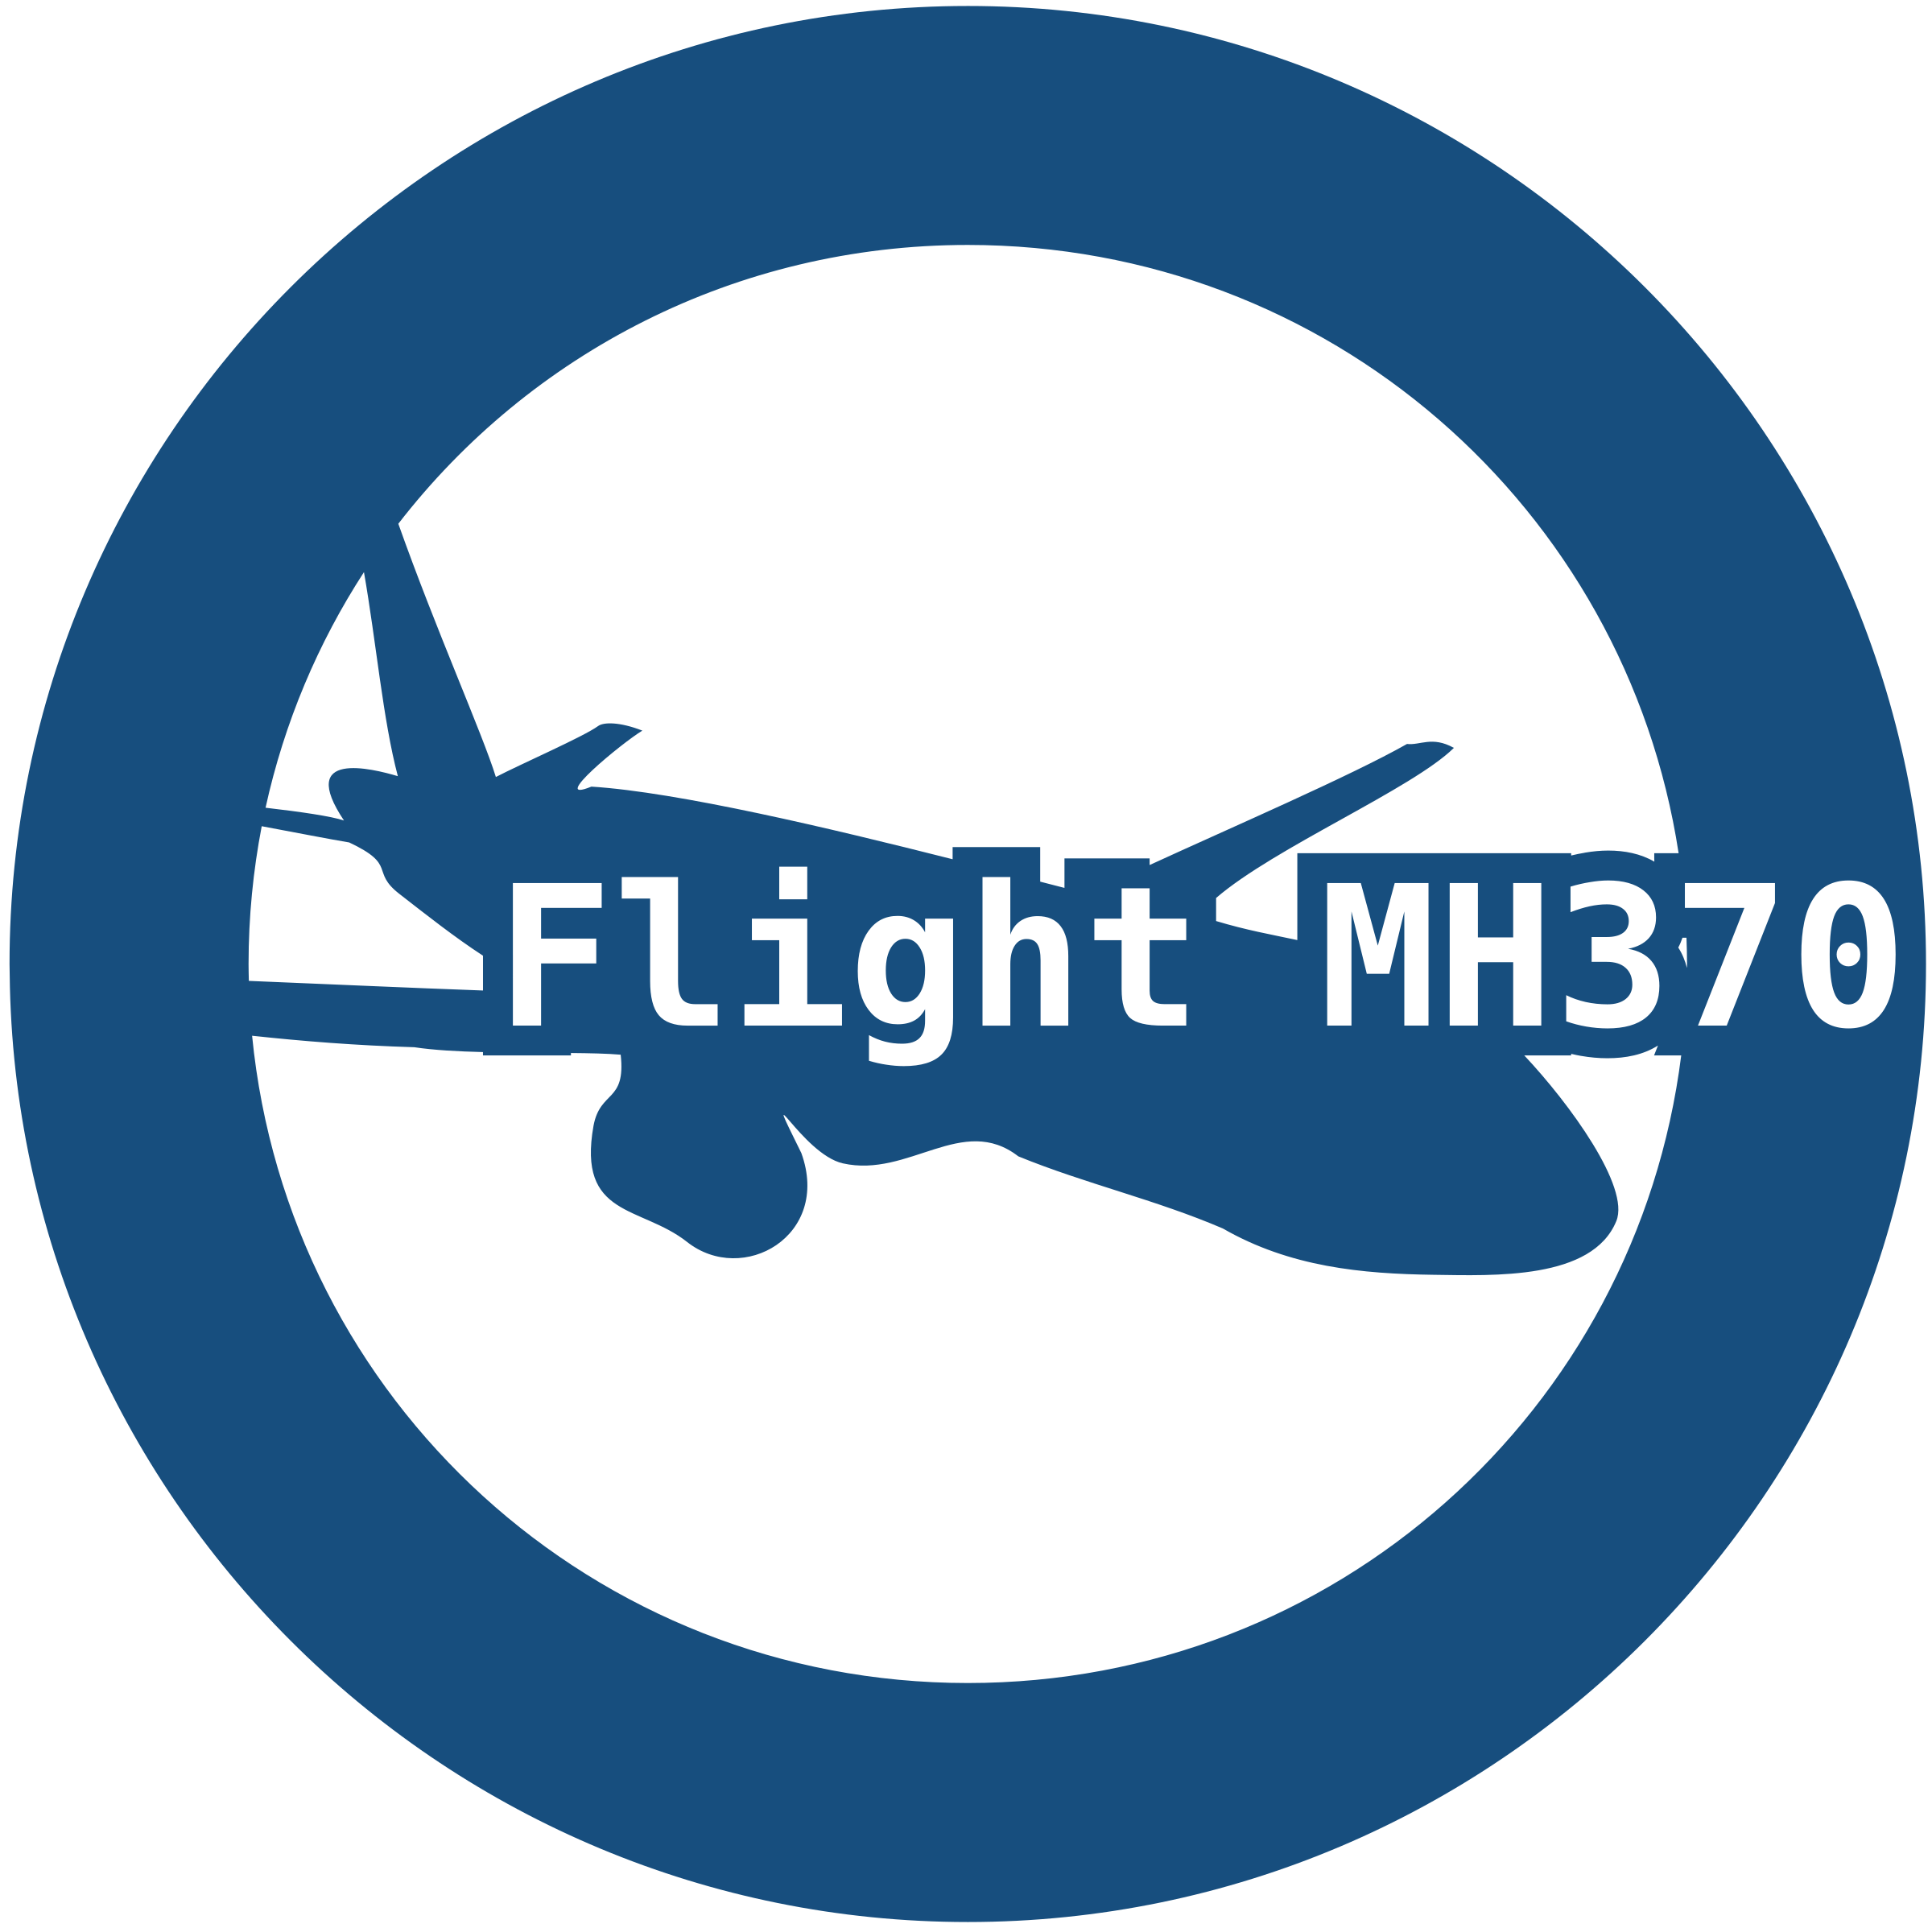 Flight MH370 by Last-Dino